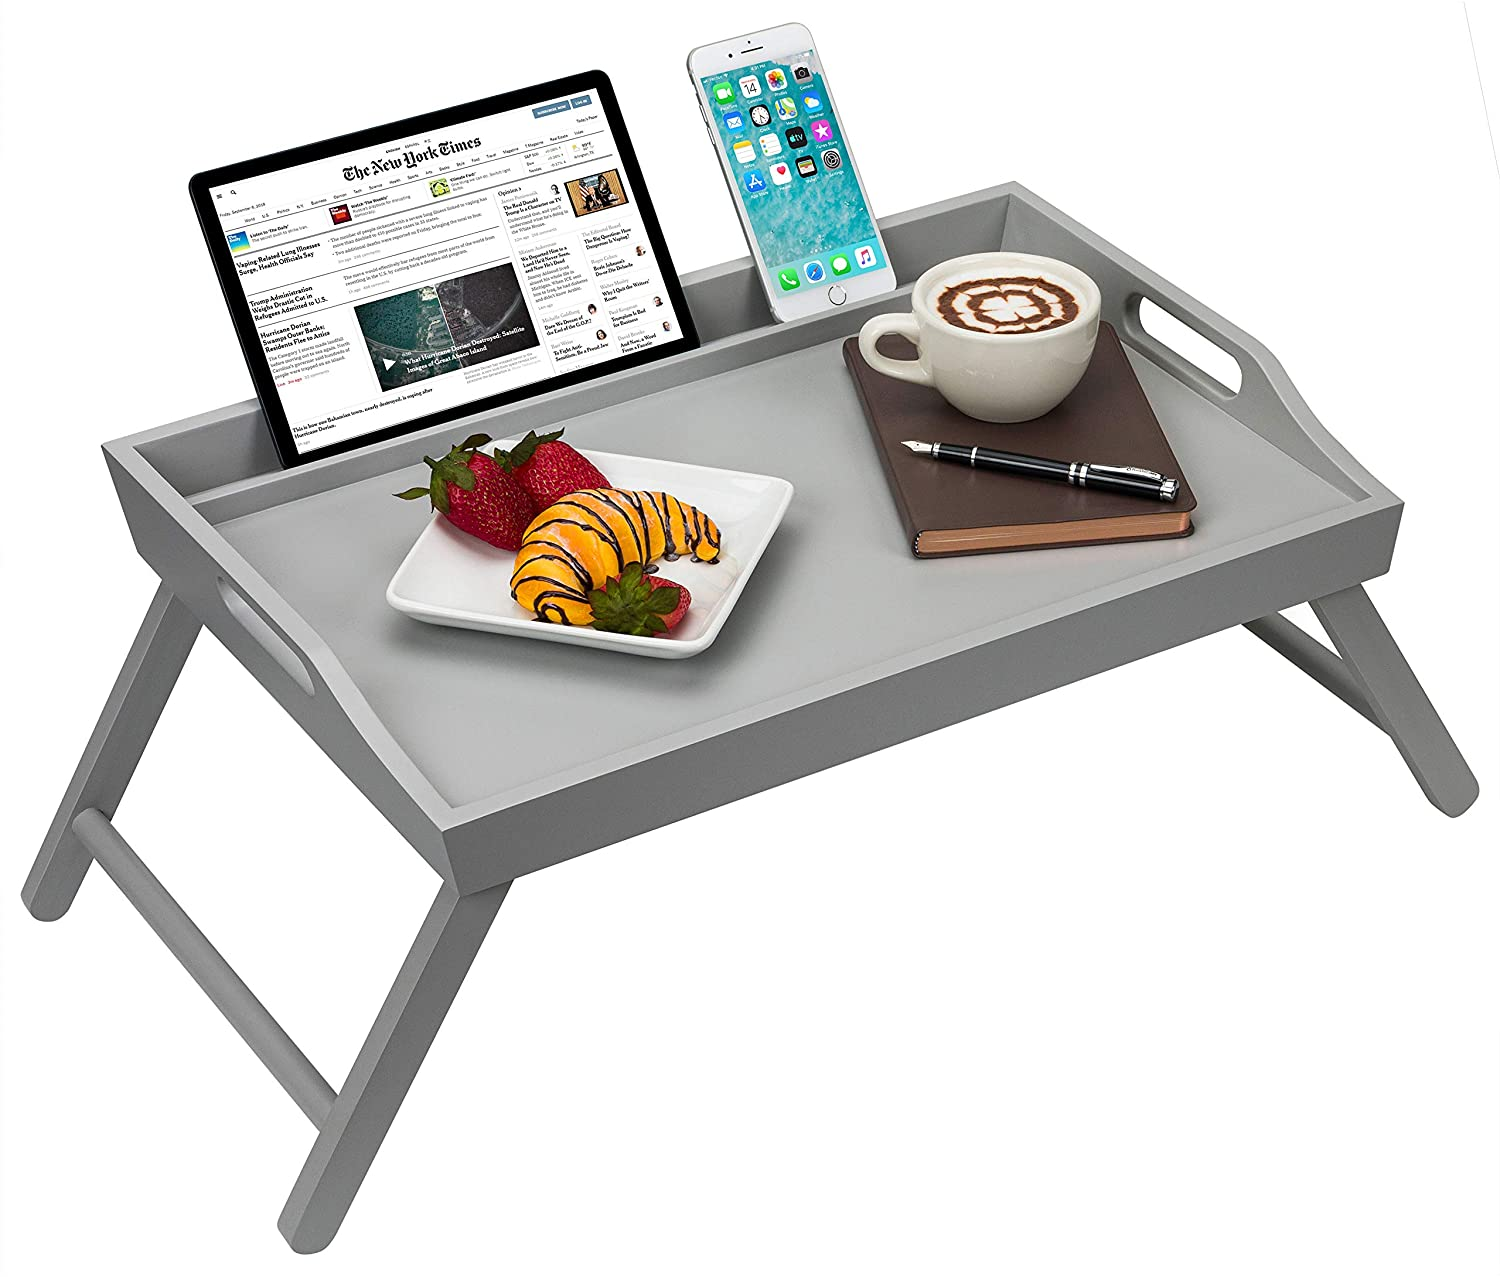 Rossie Home Media Bed Tray with Phone Holder - Fits up to 17.3 Inch Laptops and Most Tablets - Calming Gray - Style No. 78105